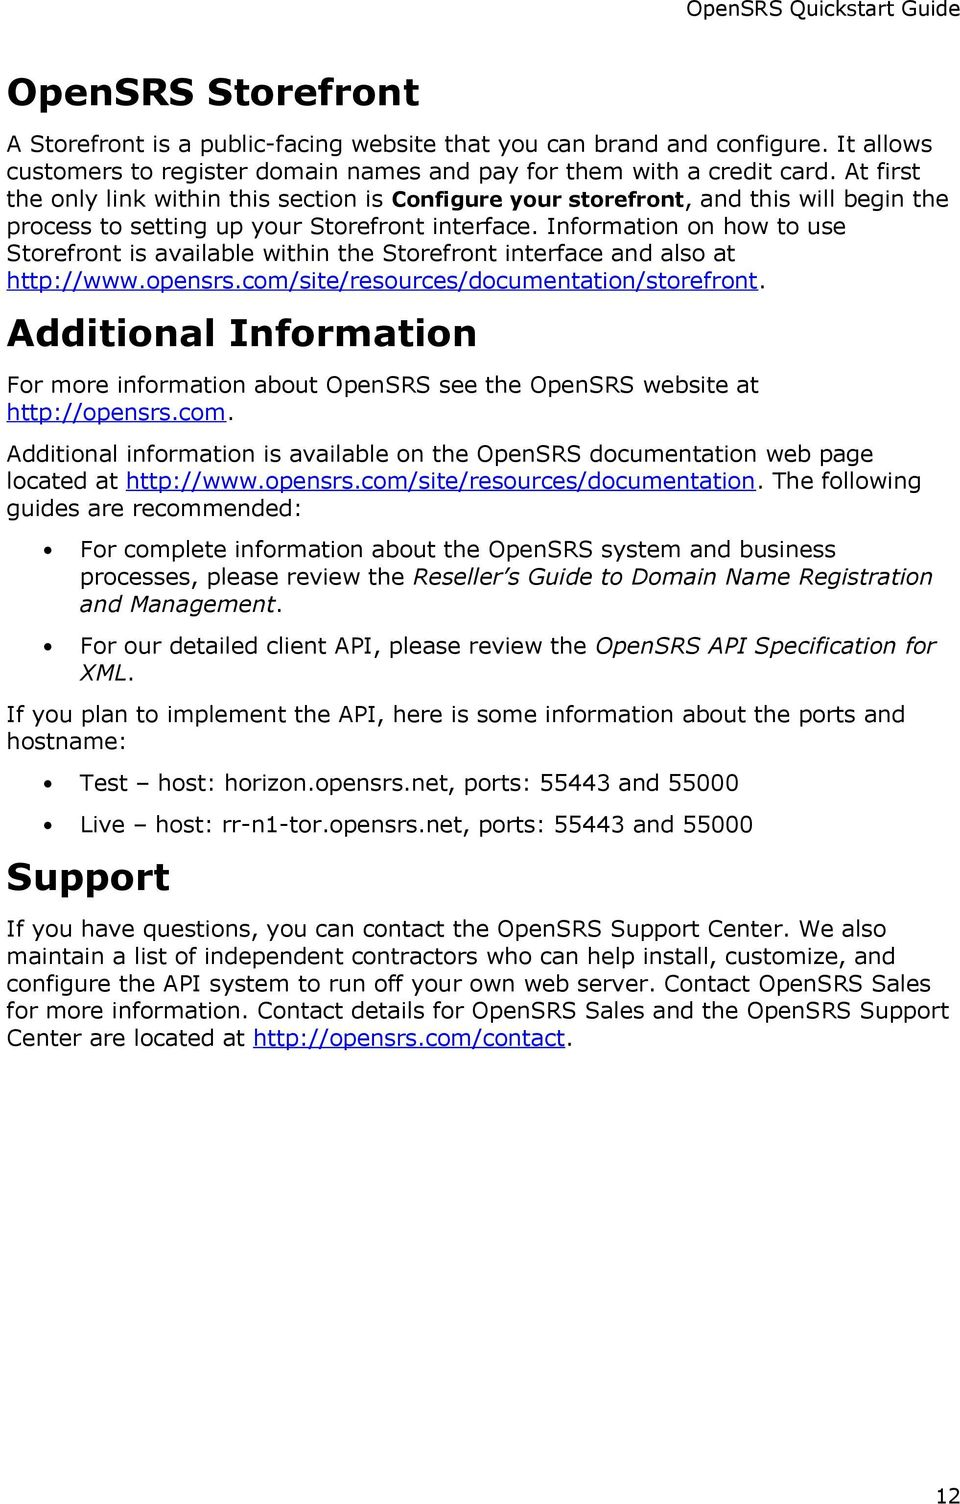 Information on how to use Storefront is available within the Storefront interface and also at http://www.opensrs.com/site/resources/documentation/storefront.